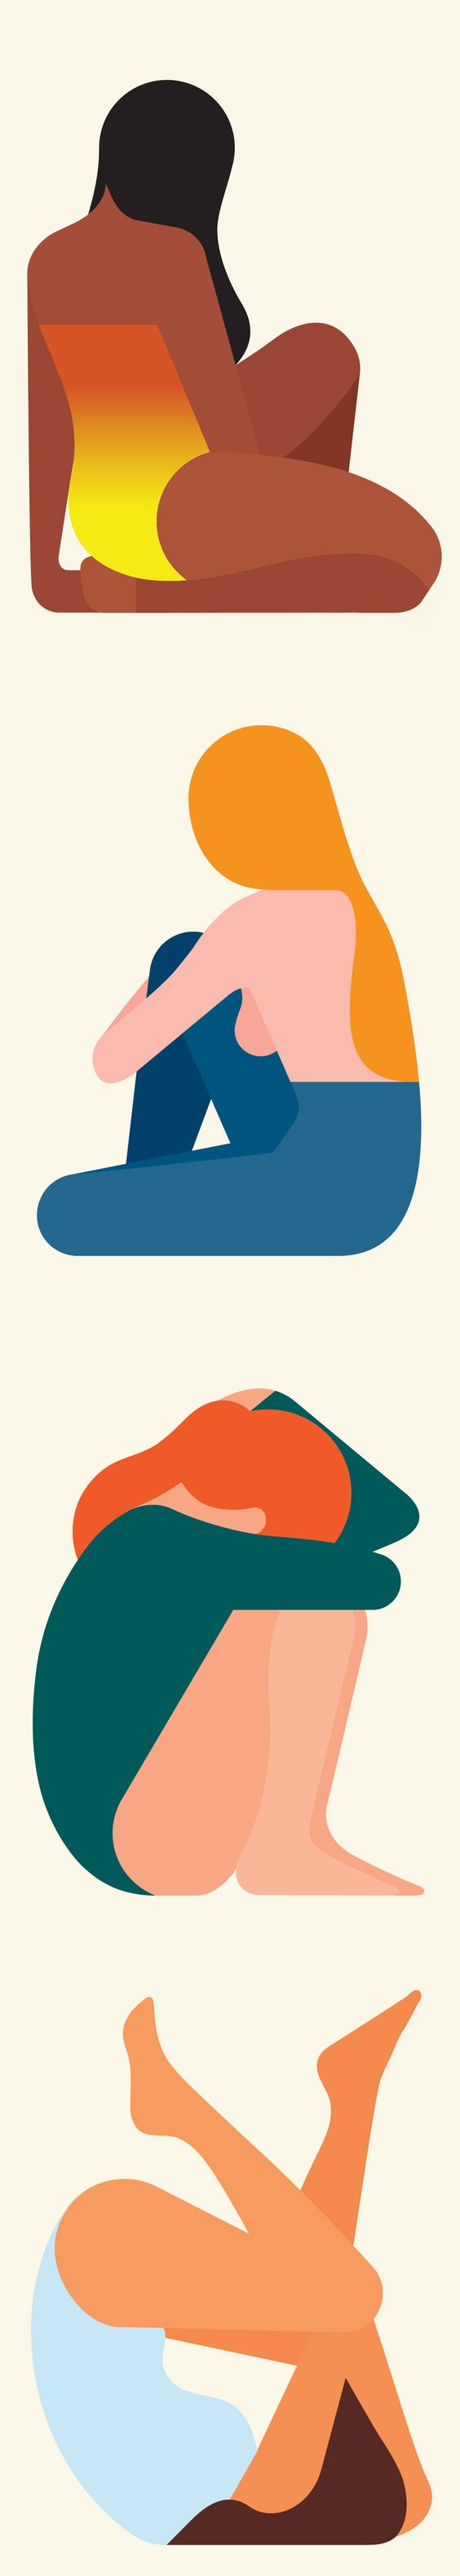 Gorgeous clean & bold shapes from illustrator Rob Bailey - https://robbailey.studio/: